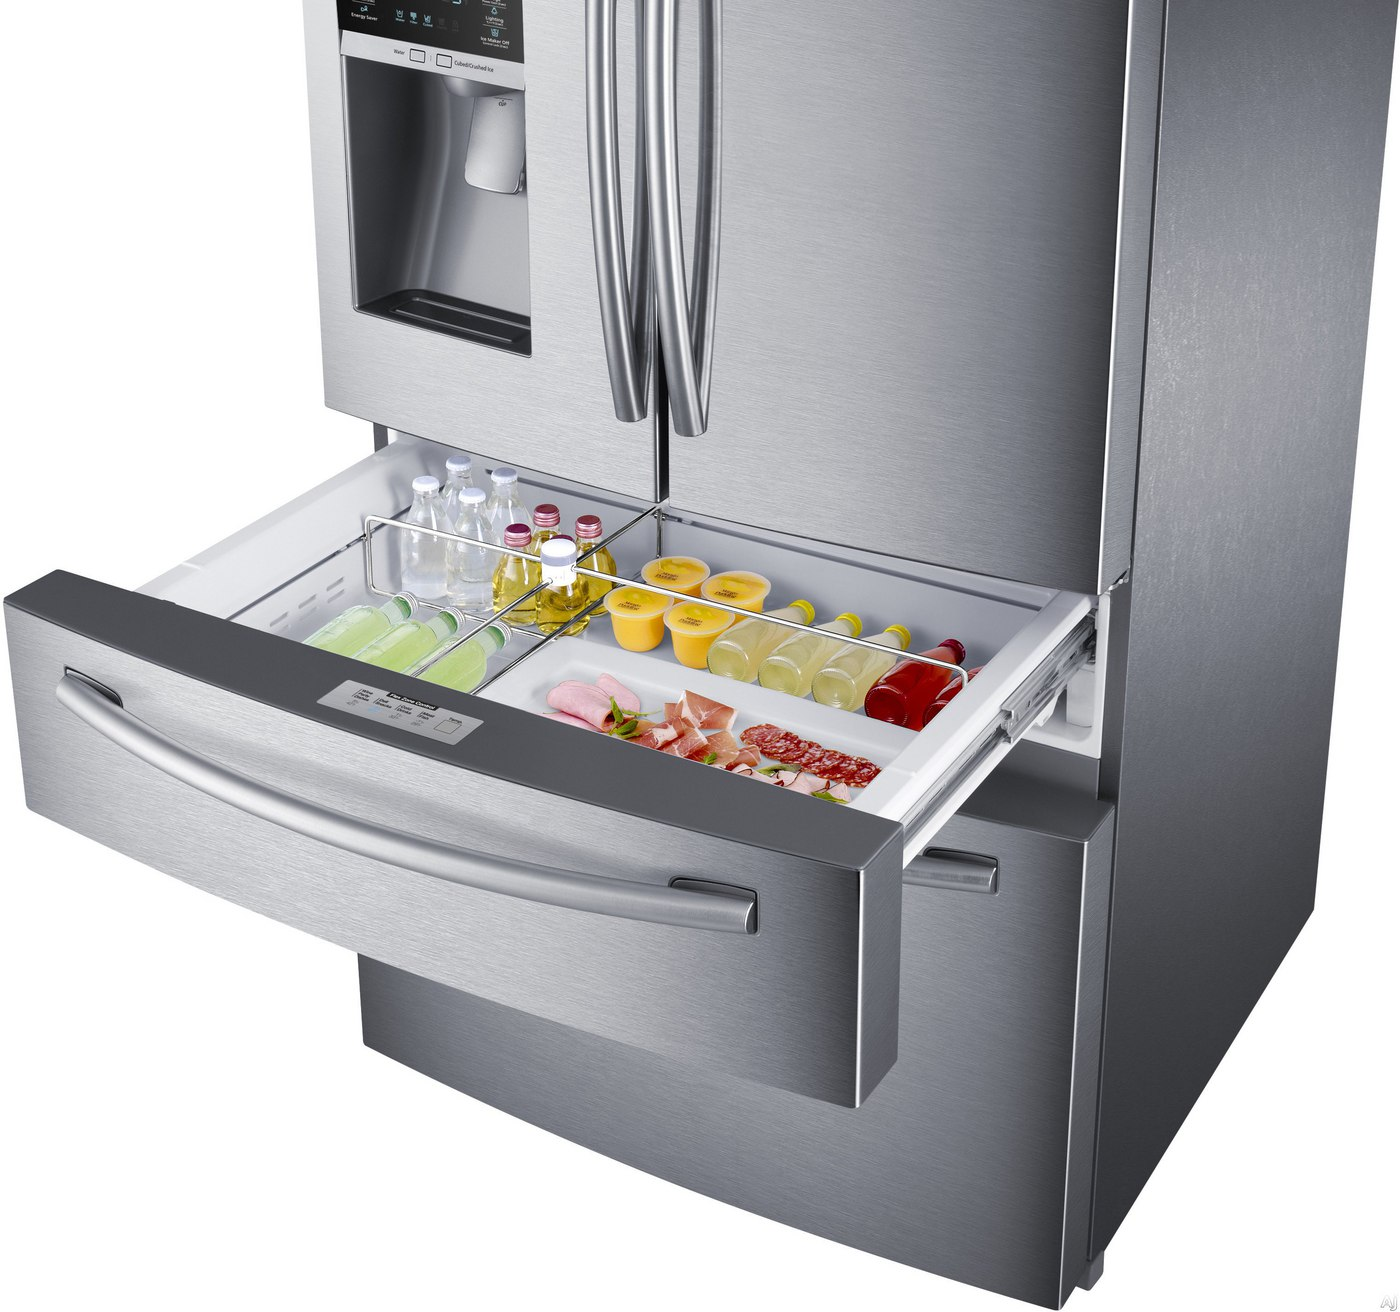 drawer appliances cnet best here news the get out check kitchen are large kitchenaid buy drawers for you refrigerator can